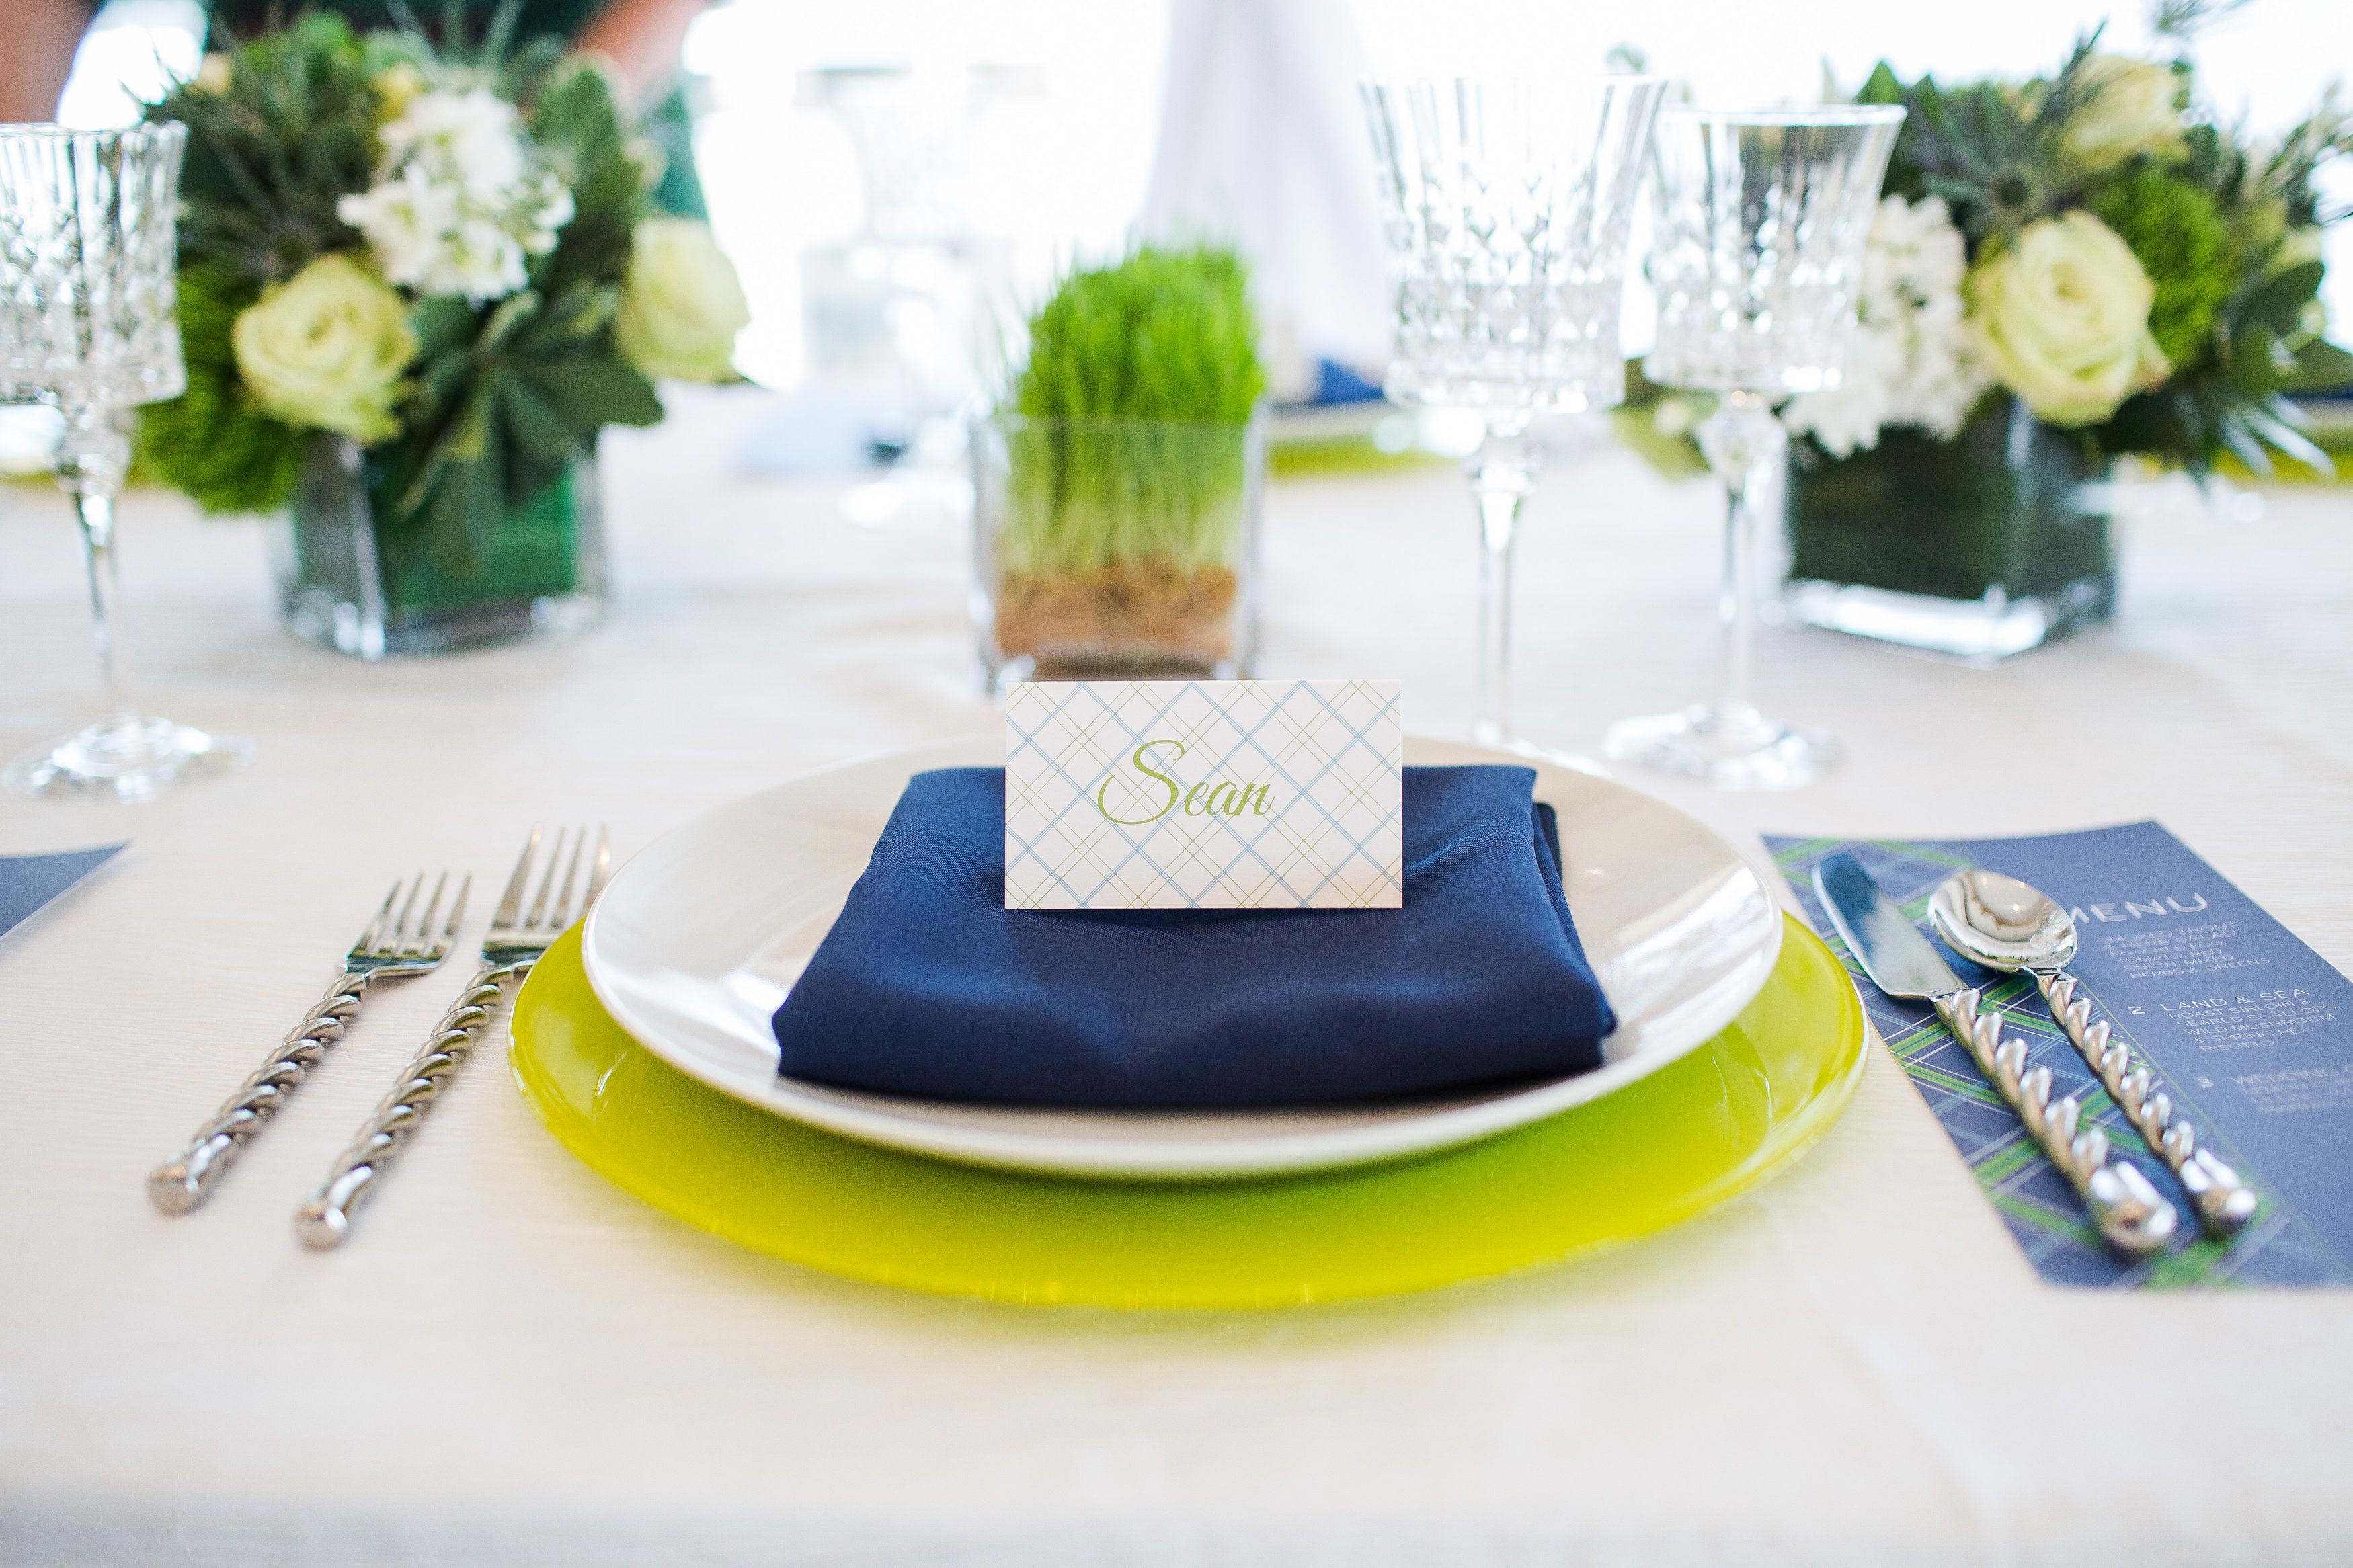 Lime green, navy blue and white make for a fun golf themed wedding ...